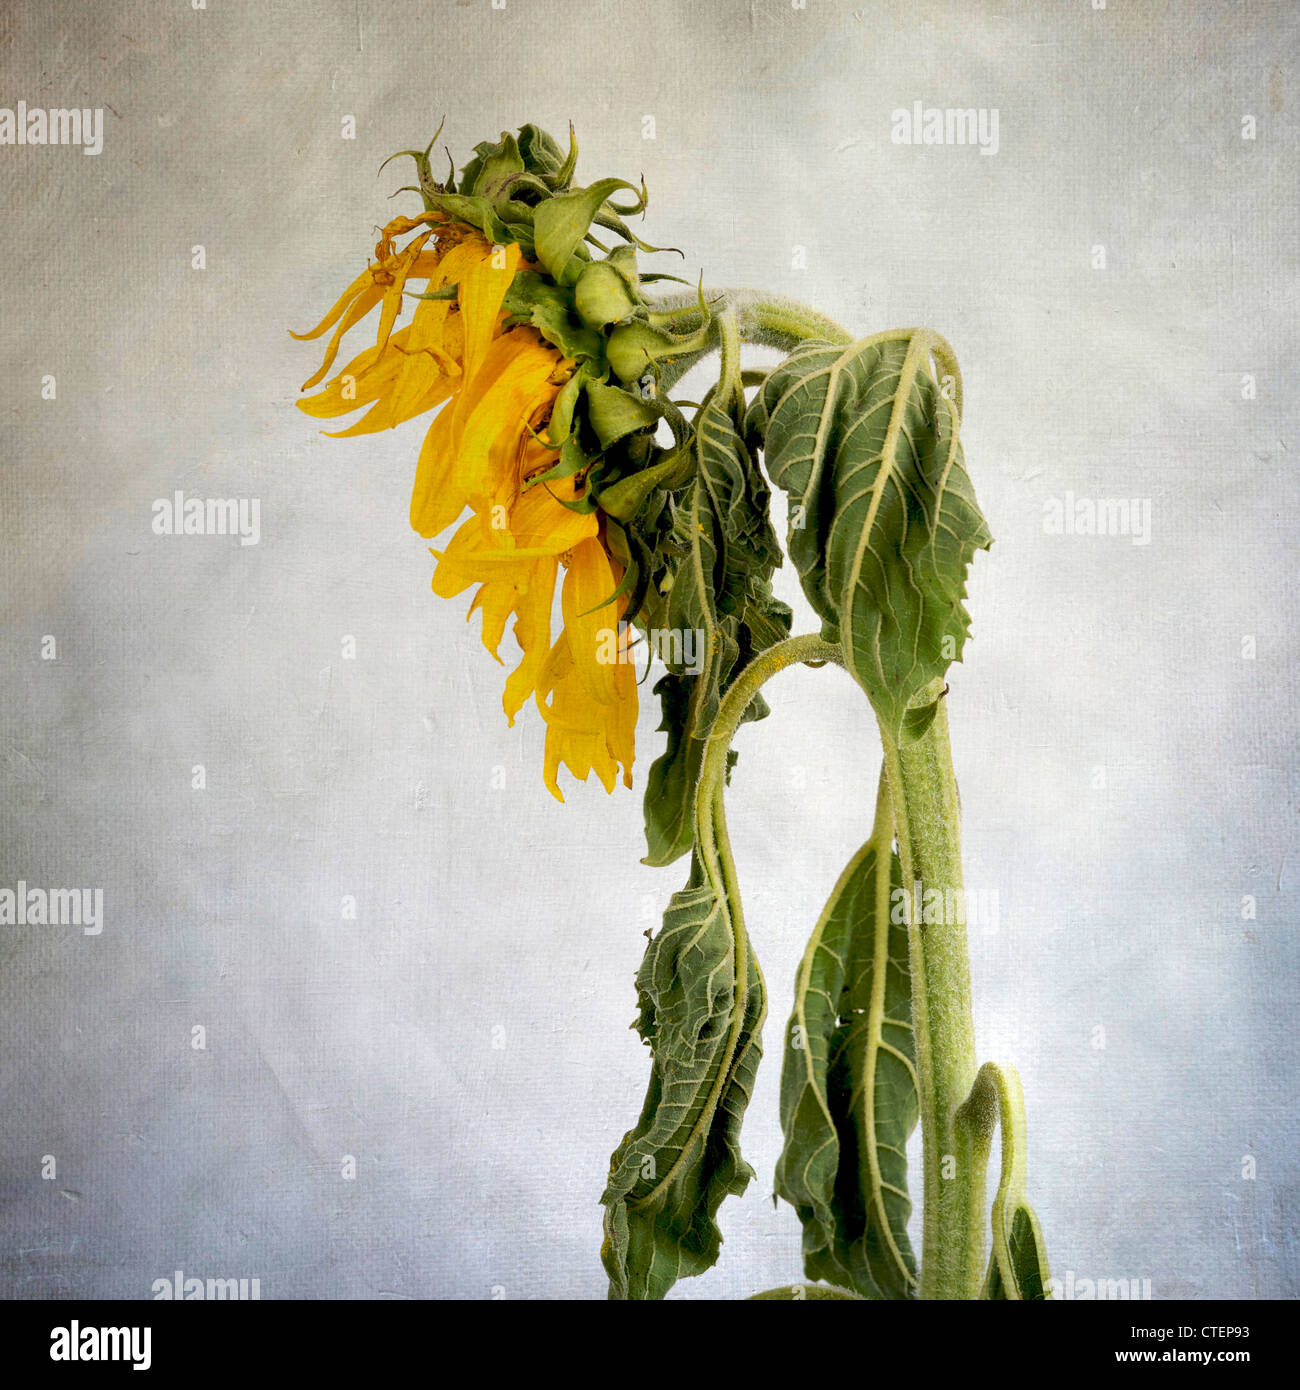 Withered sunflower - Stock Image